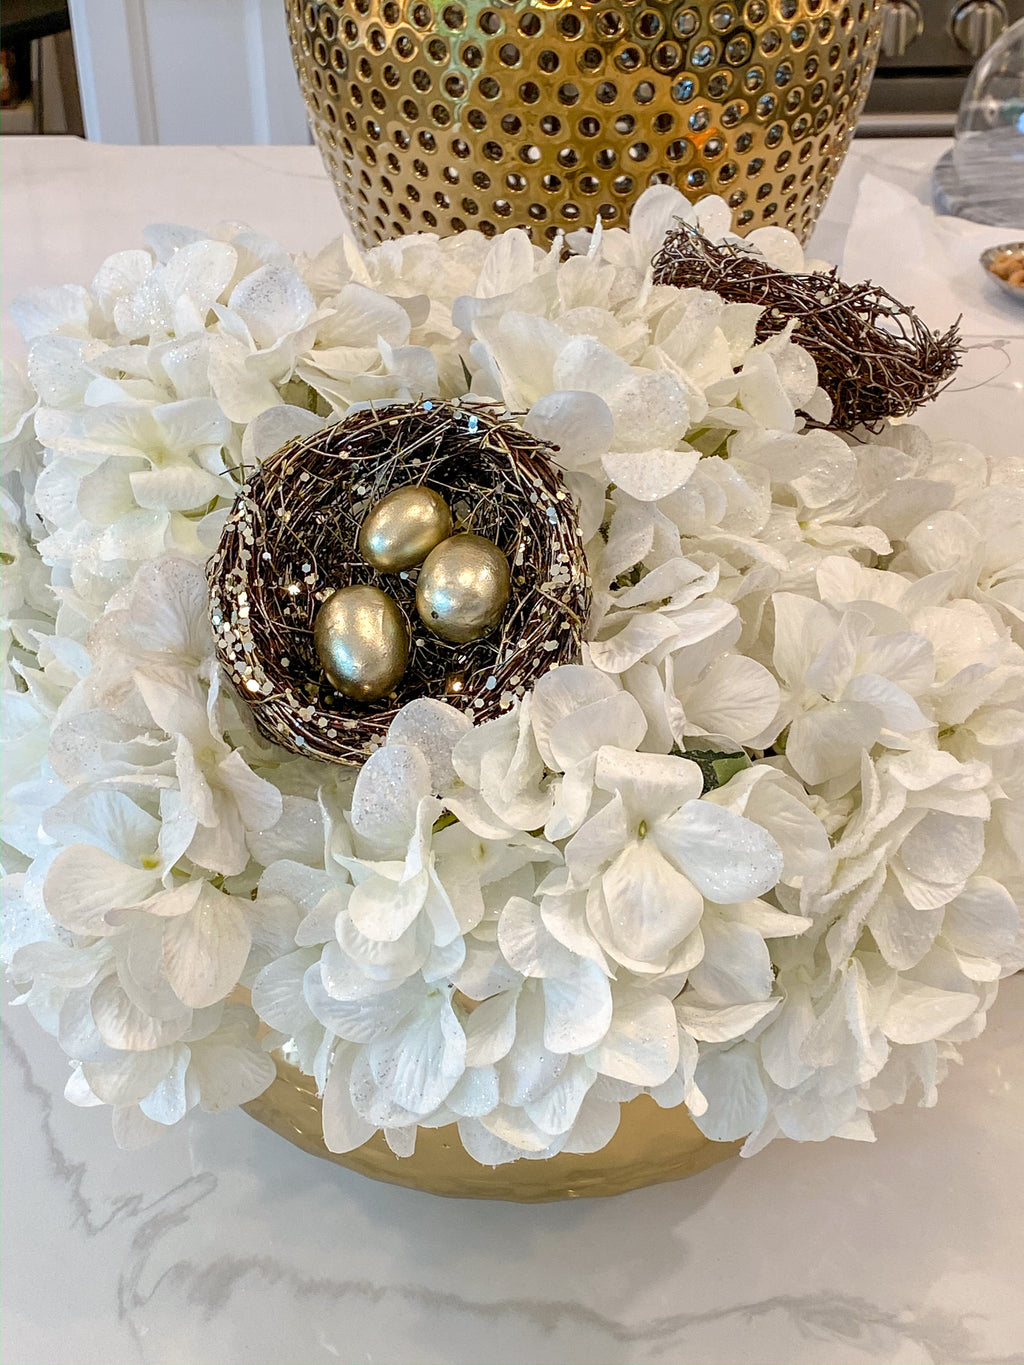 Metallic Gold Nest Stem with Brass Eggs-Inspire Me! Home Decor